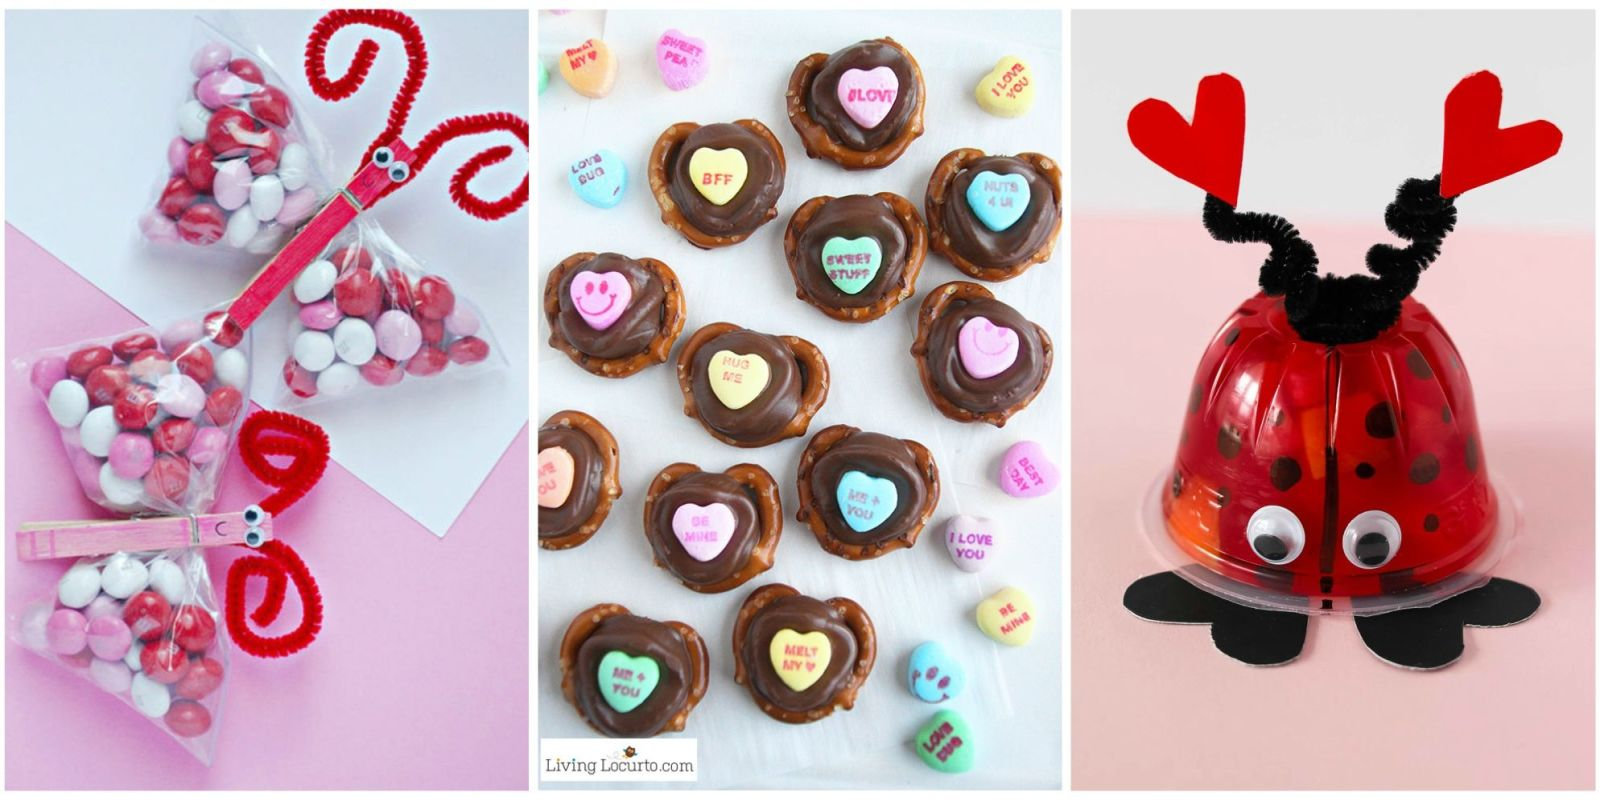 Valentine's Day Snacks - Healthy and Cute Snack Ideas for Kids